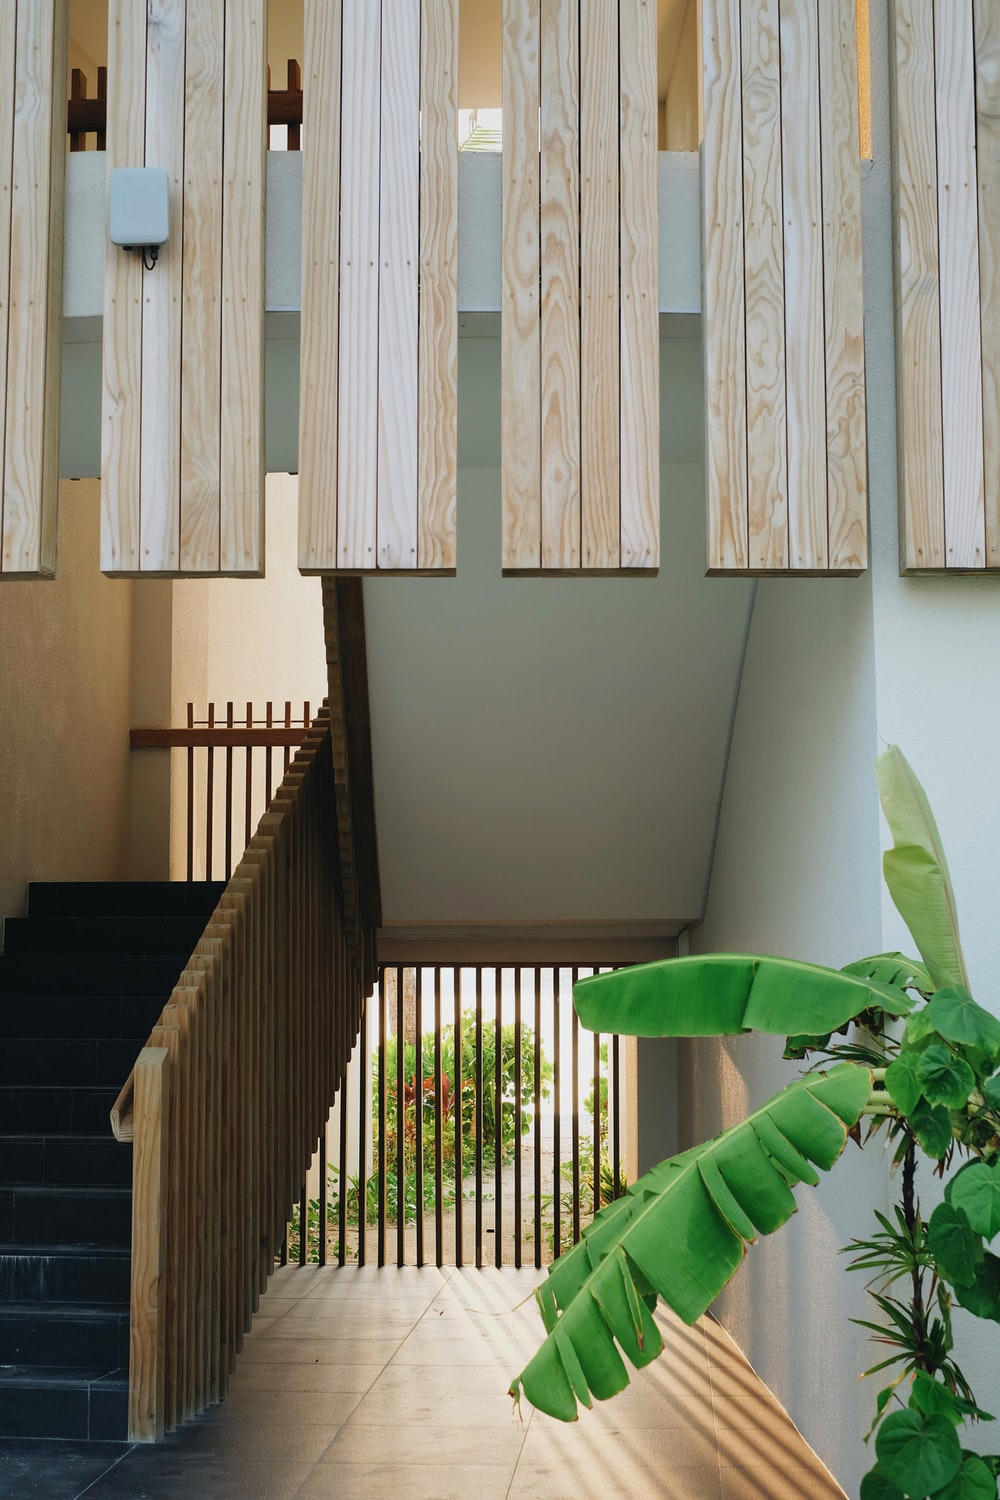 green plant near brown wooden staircase